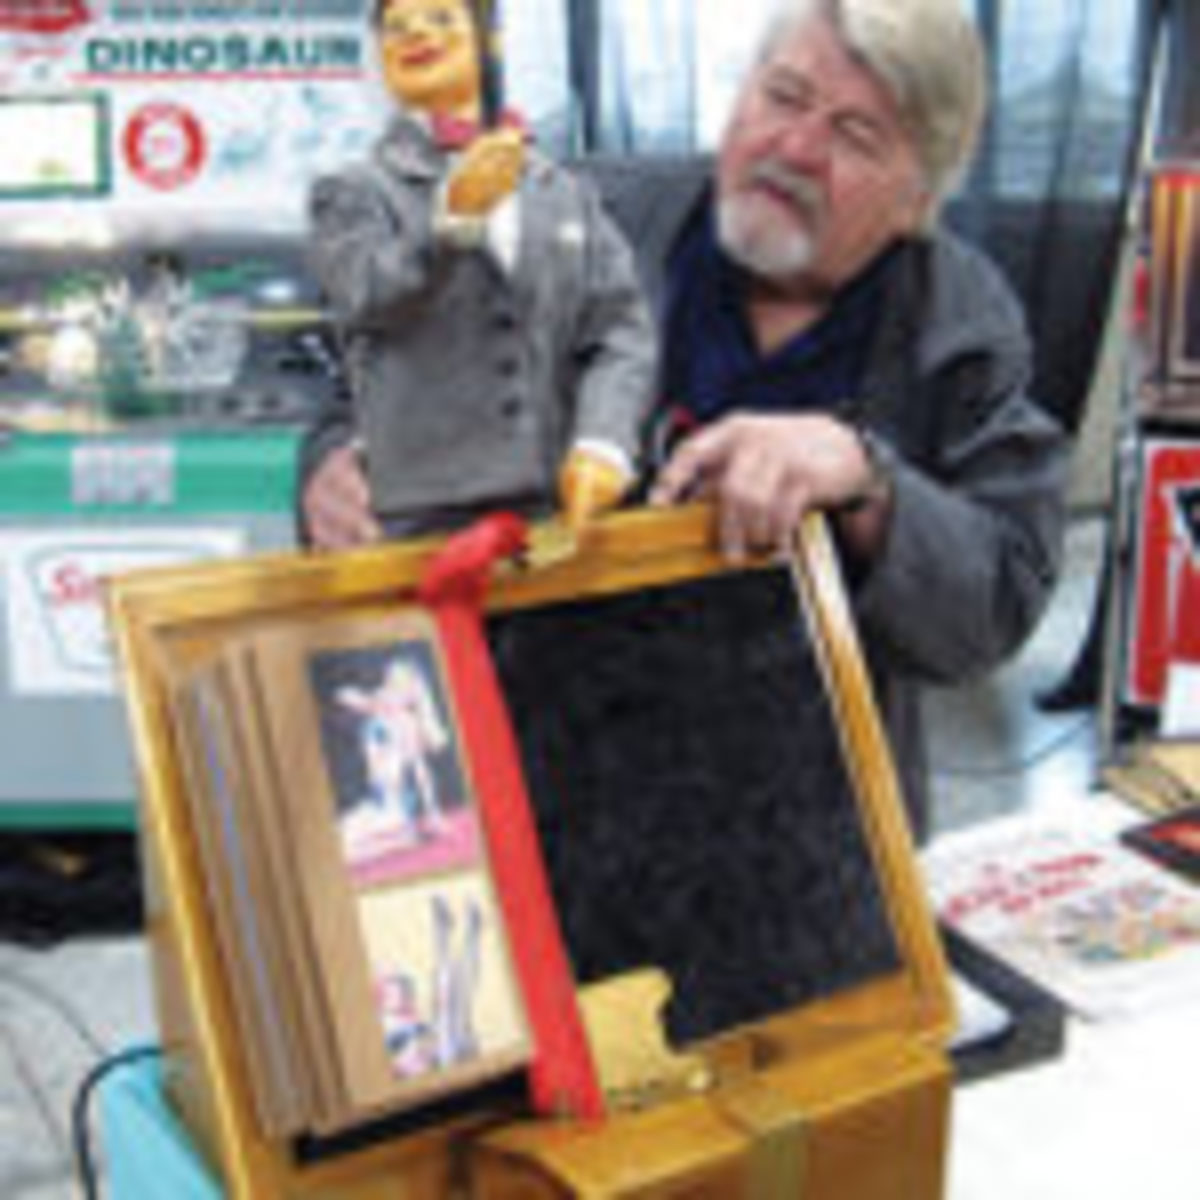 """Paul Pincott, an associate of Collector-Concierge-International, B.C. Canada, adjusts the 38-inch-tall animated """"window tapper"""" with 12 different movements. The 1920-30s advertising figure could perform at your place for $9,000."""